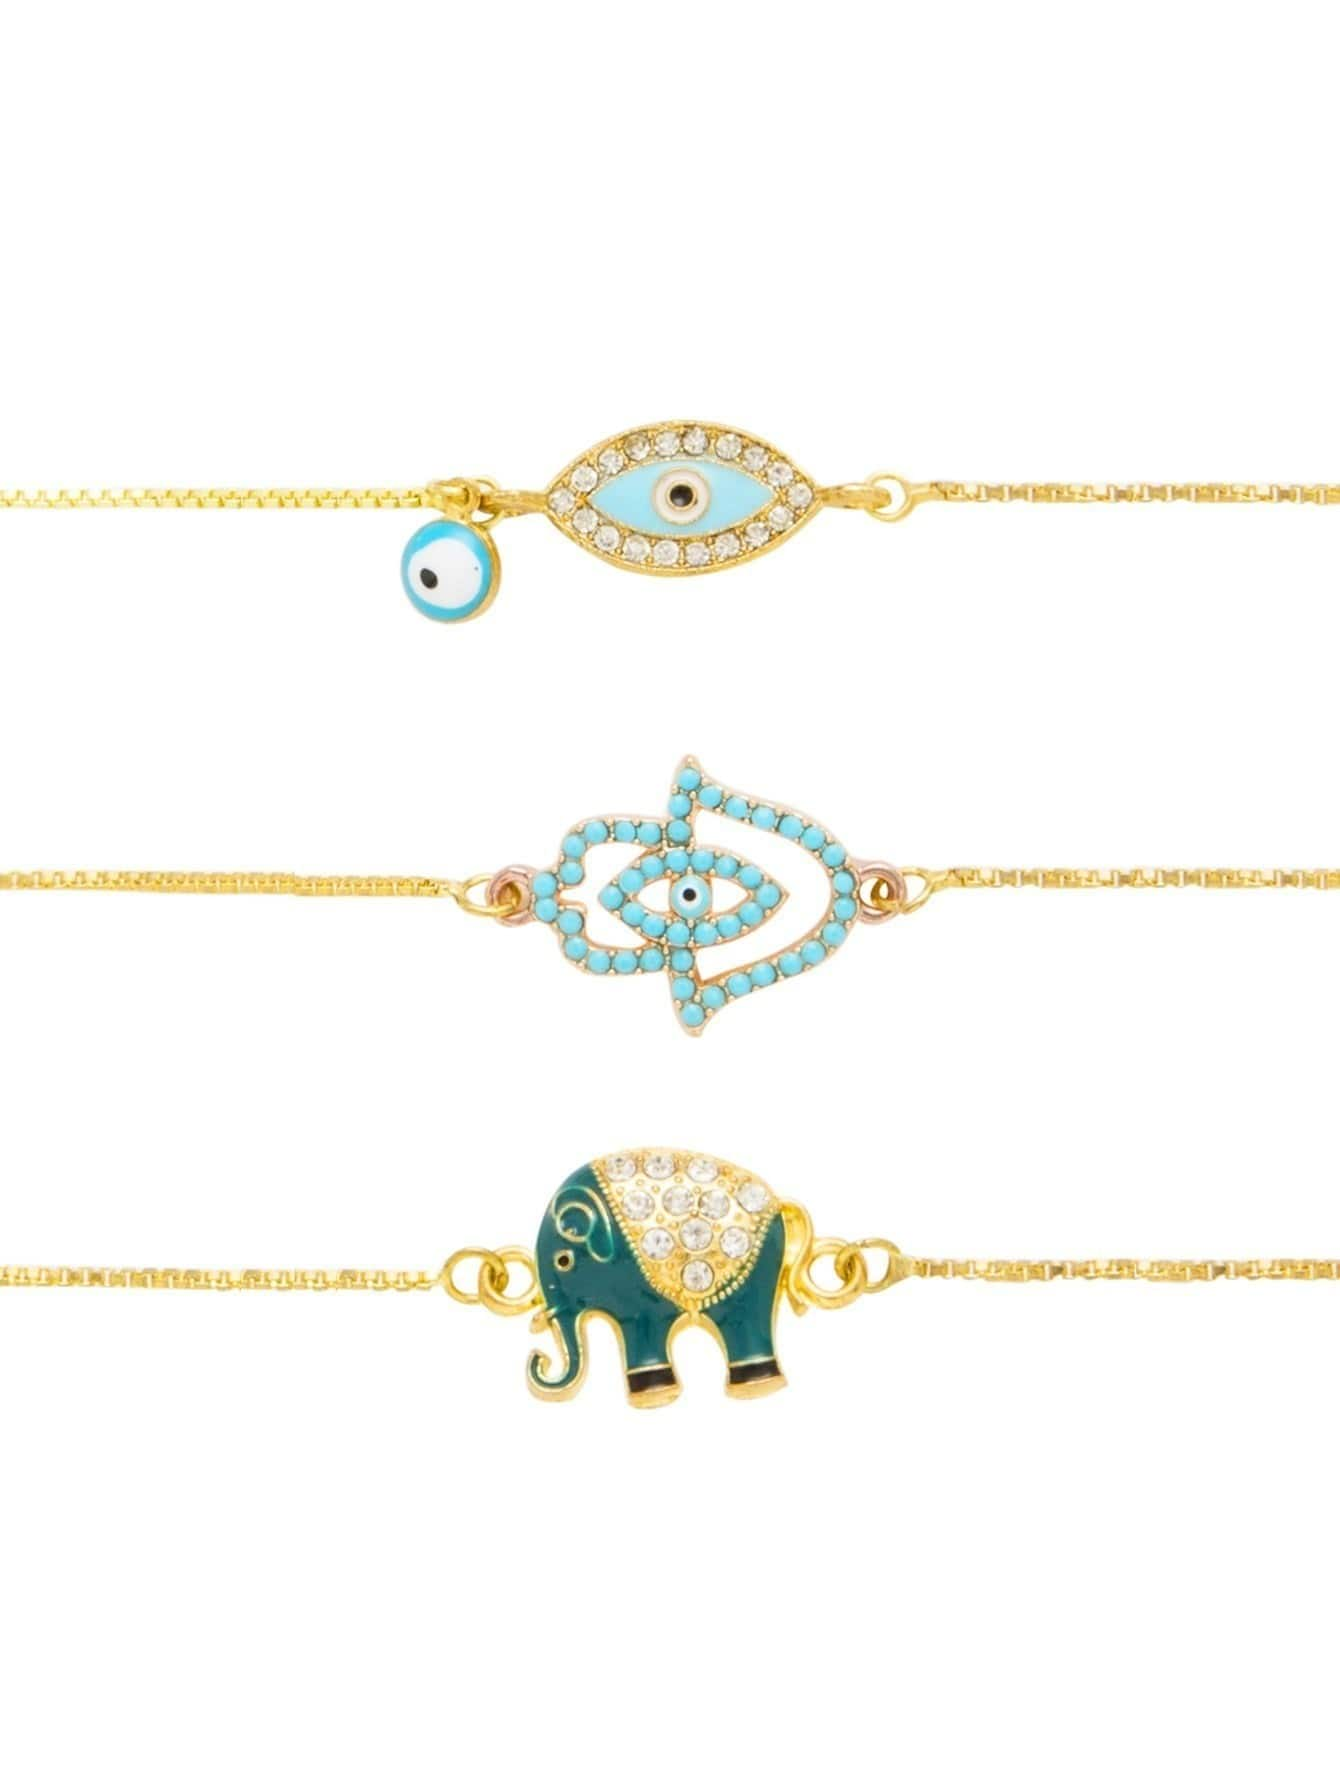 Eye & Elephant Design Golden Link 3pcs Bracelet Set